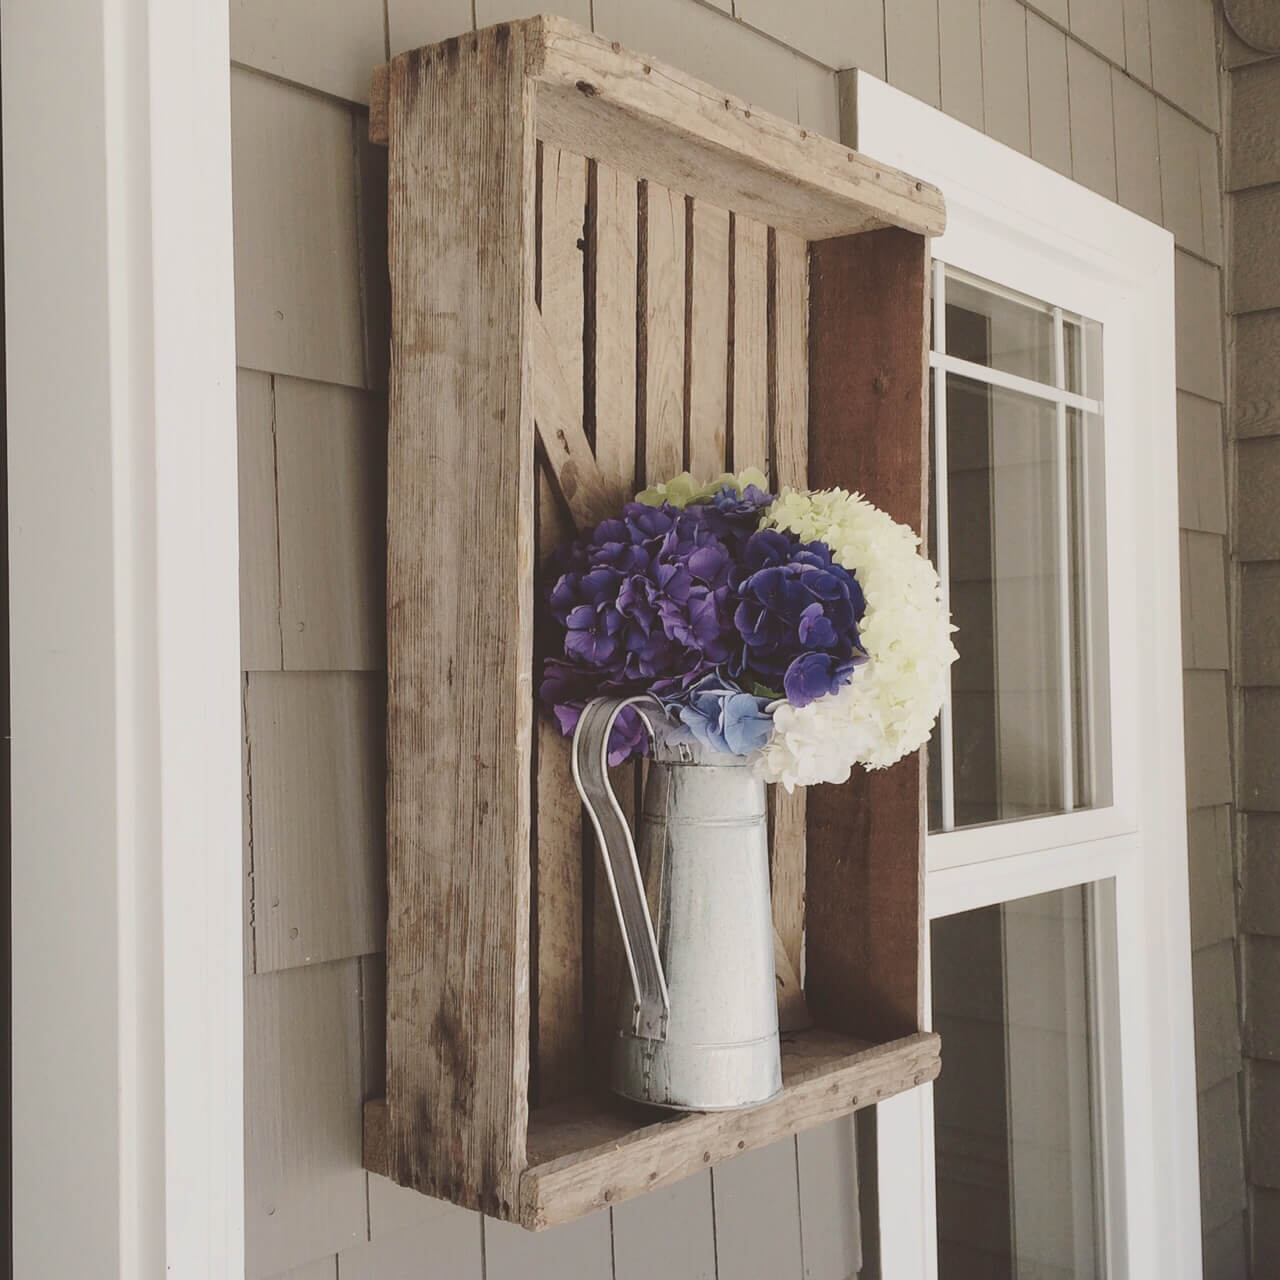 Repurposed Farm Crate Vase Mount